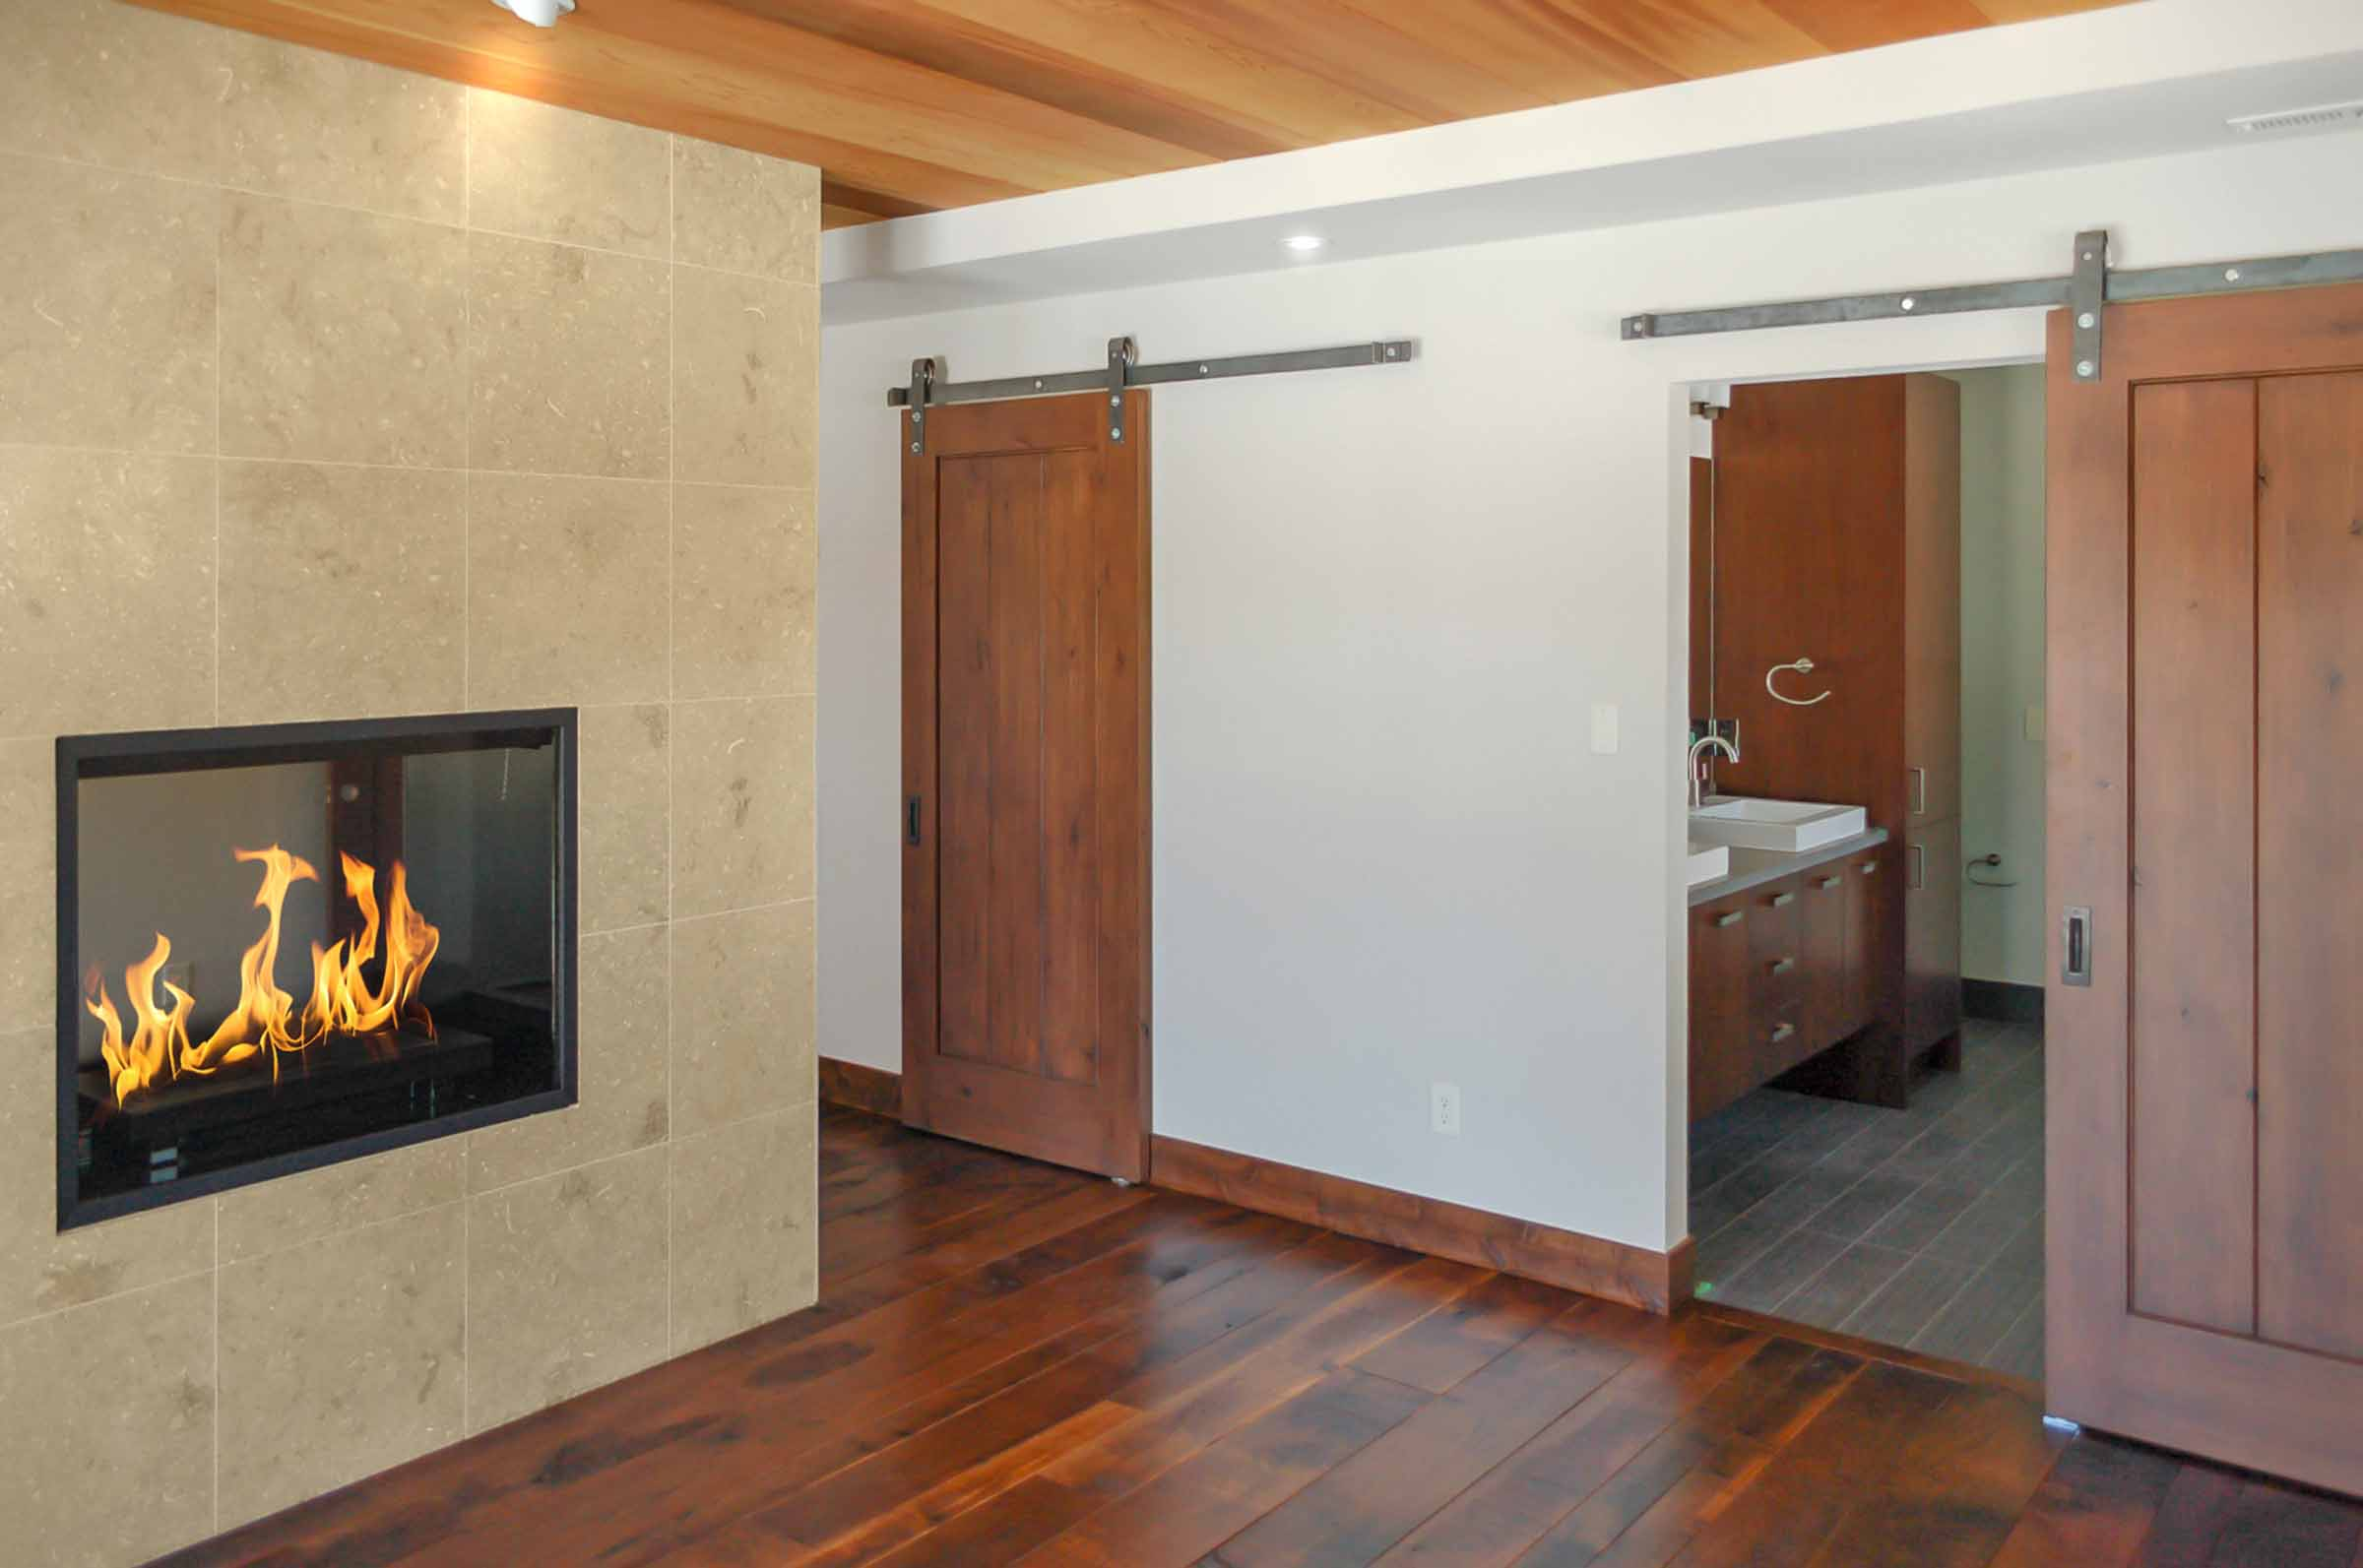 Barn Doors Custom Fireplace Denver Colorado.jpg